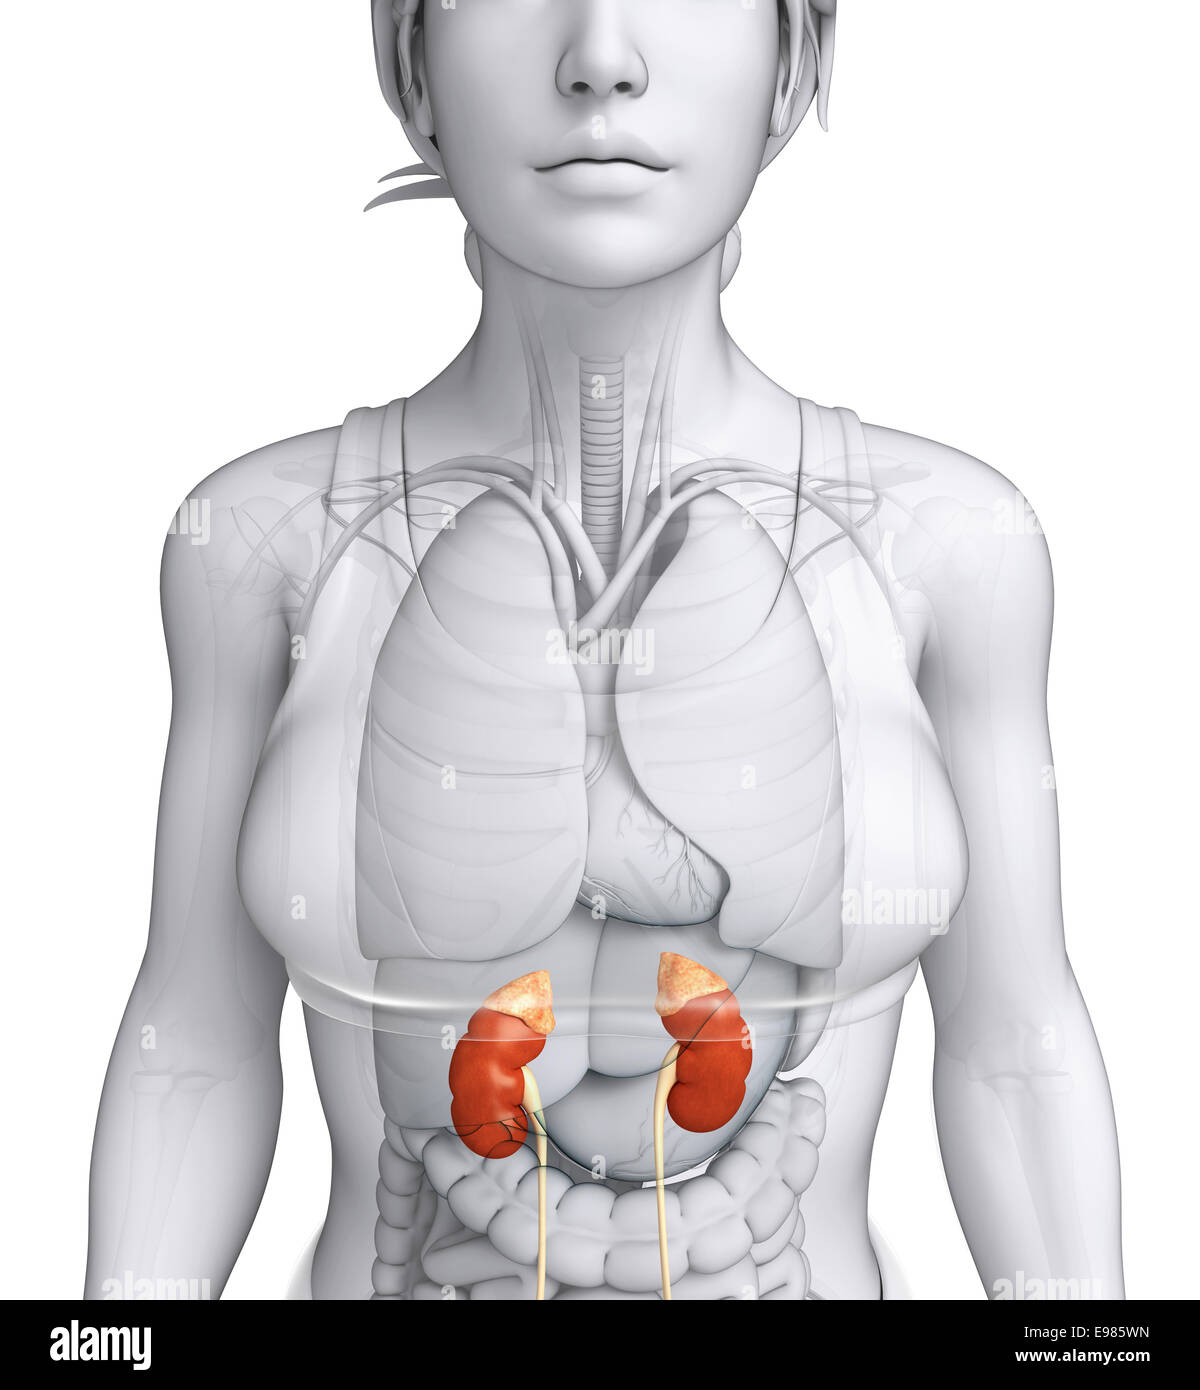 Illustration Of Female Urinary System Stock Photo 74553633 Alamy